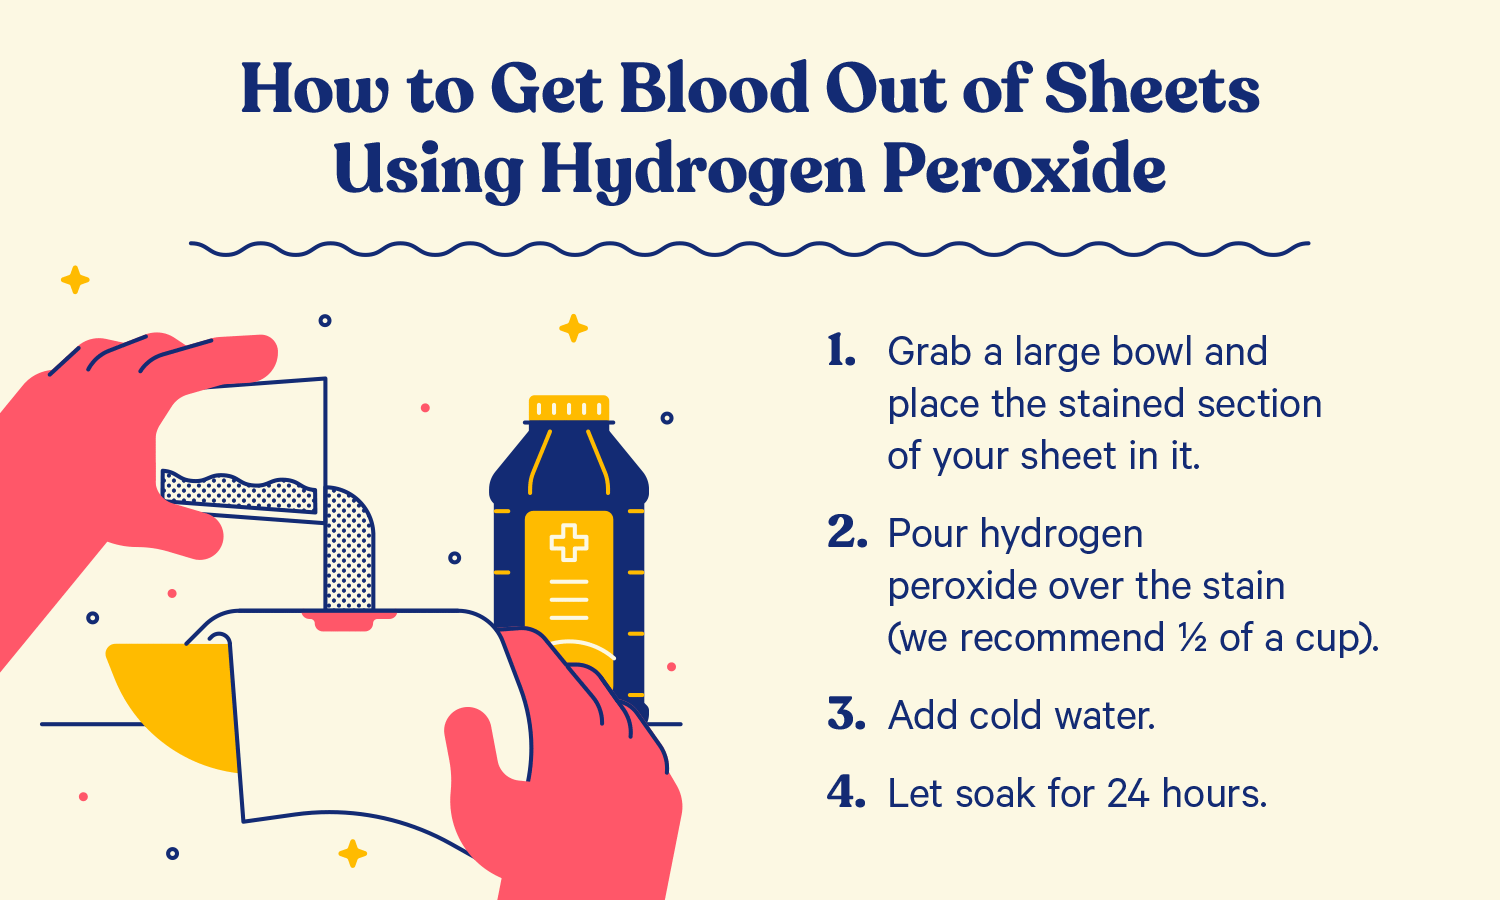 A person pours a mixture of water and hydrogen peroxide over a blood stained sheet. Illustration.